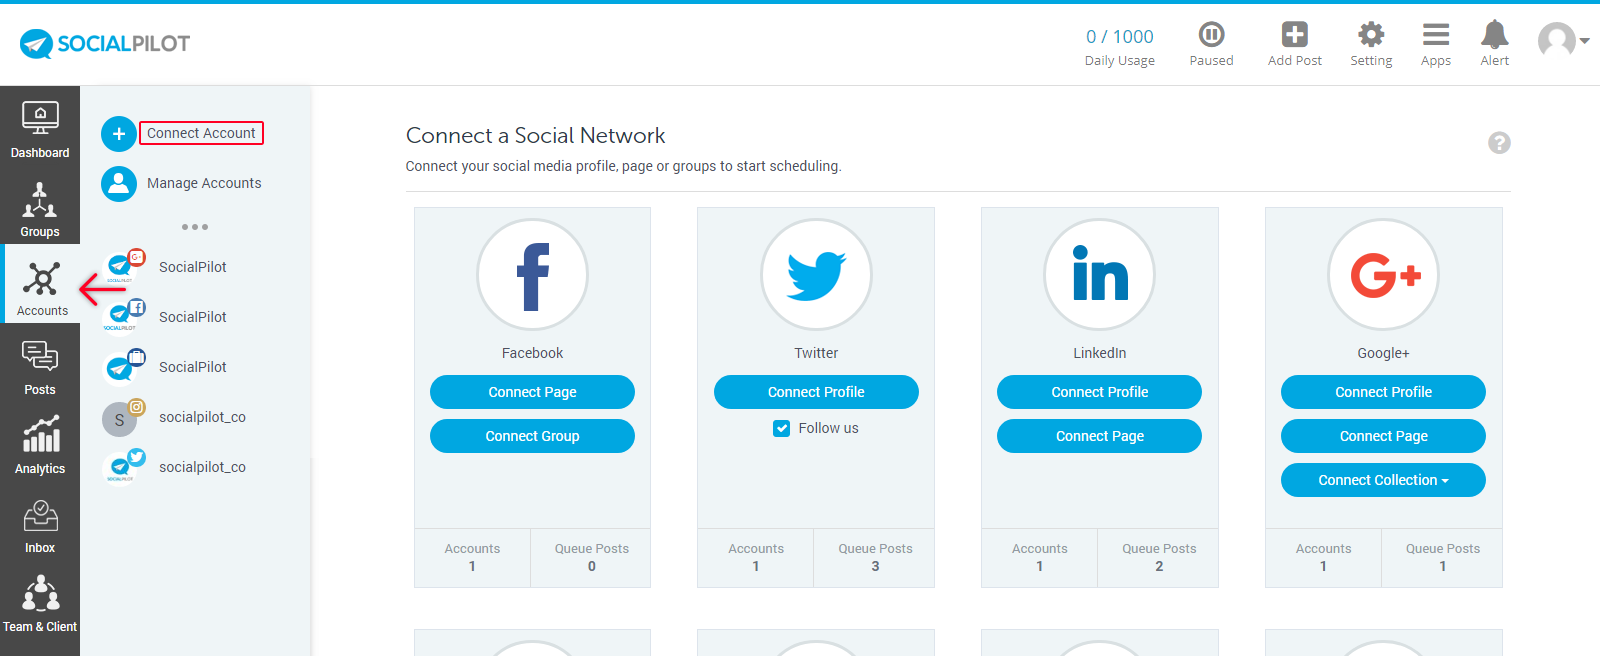 Getting Started with SocialPilot - SocialPilot Help